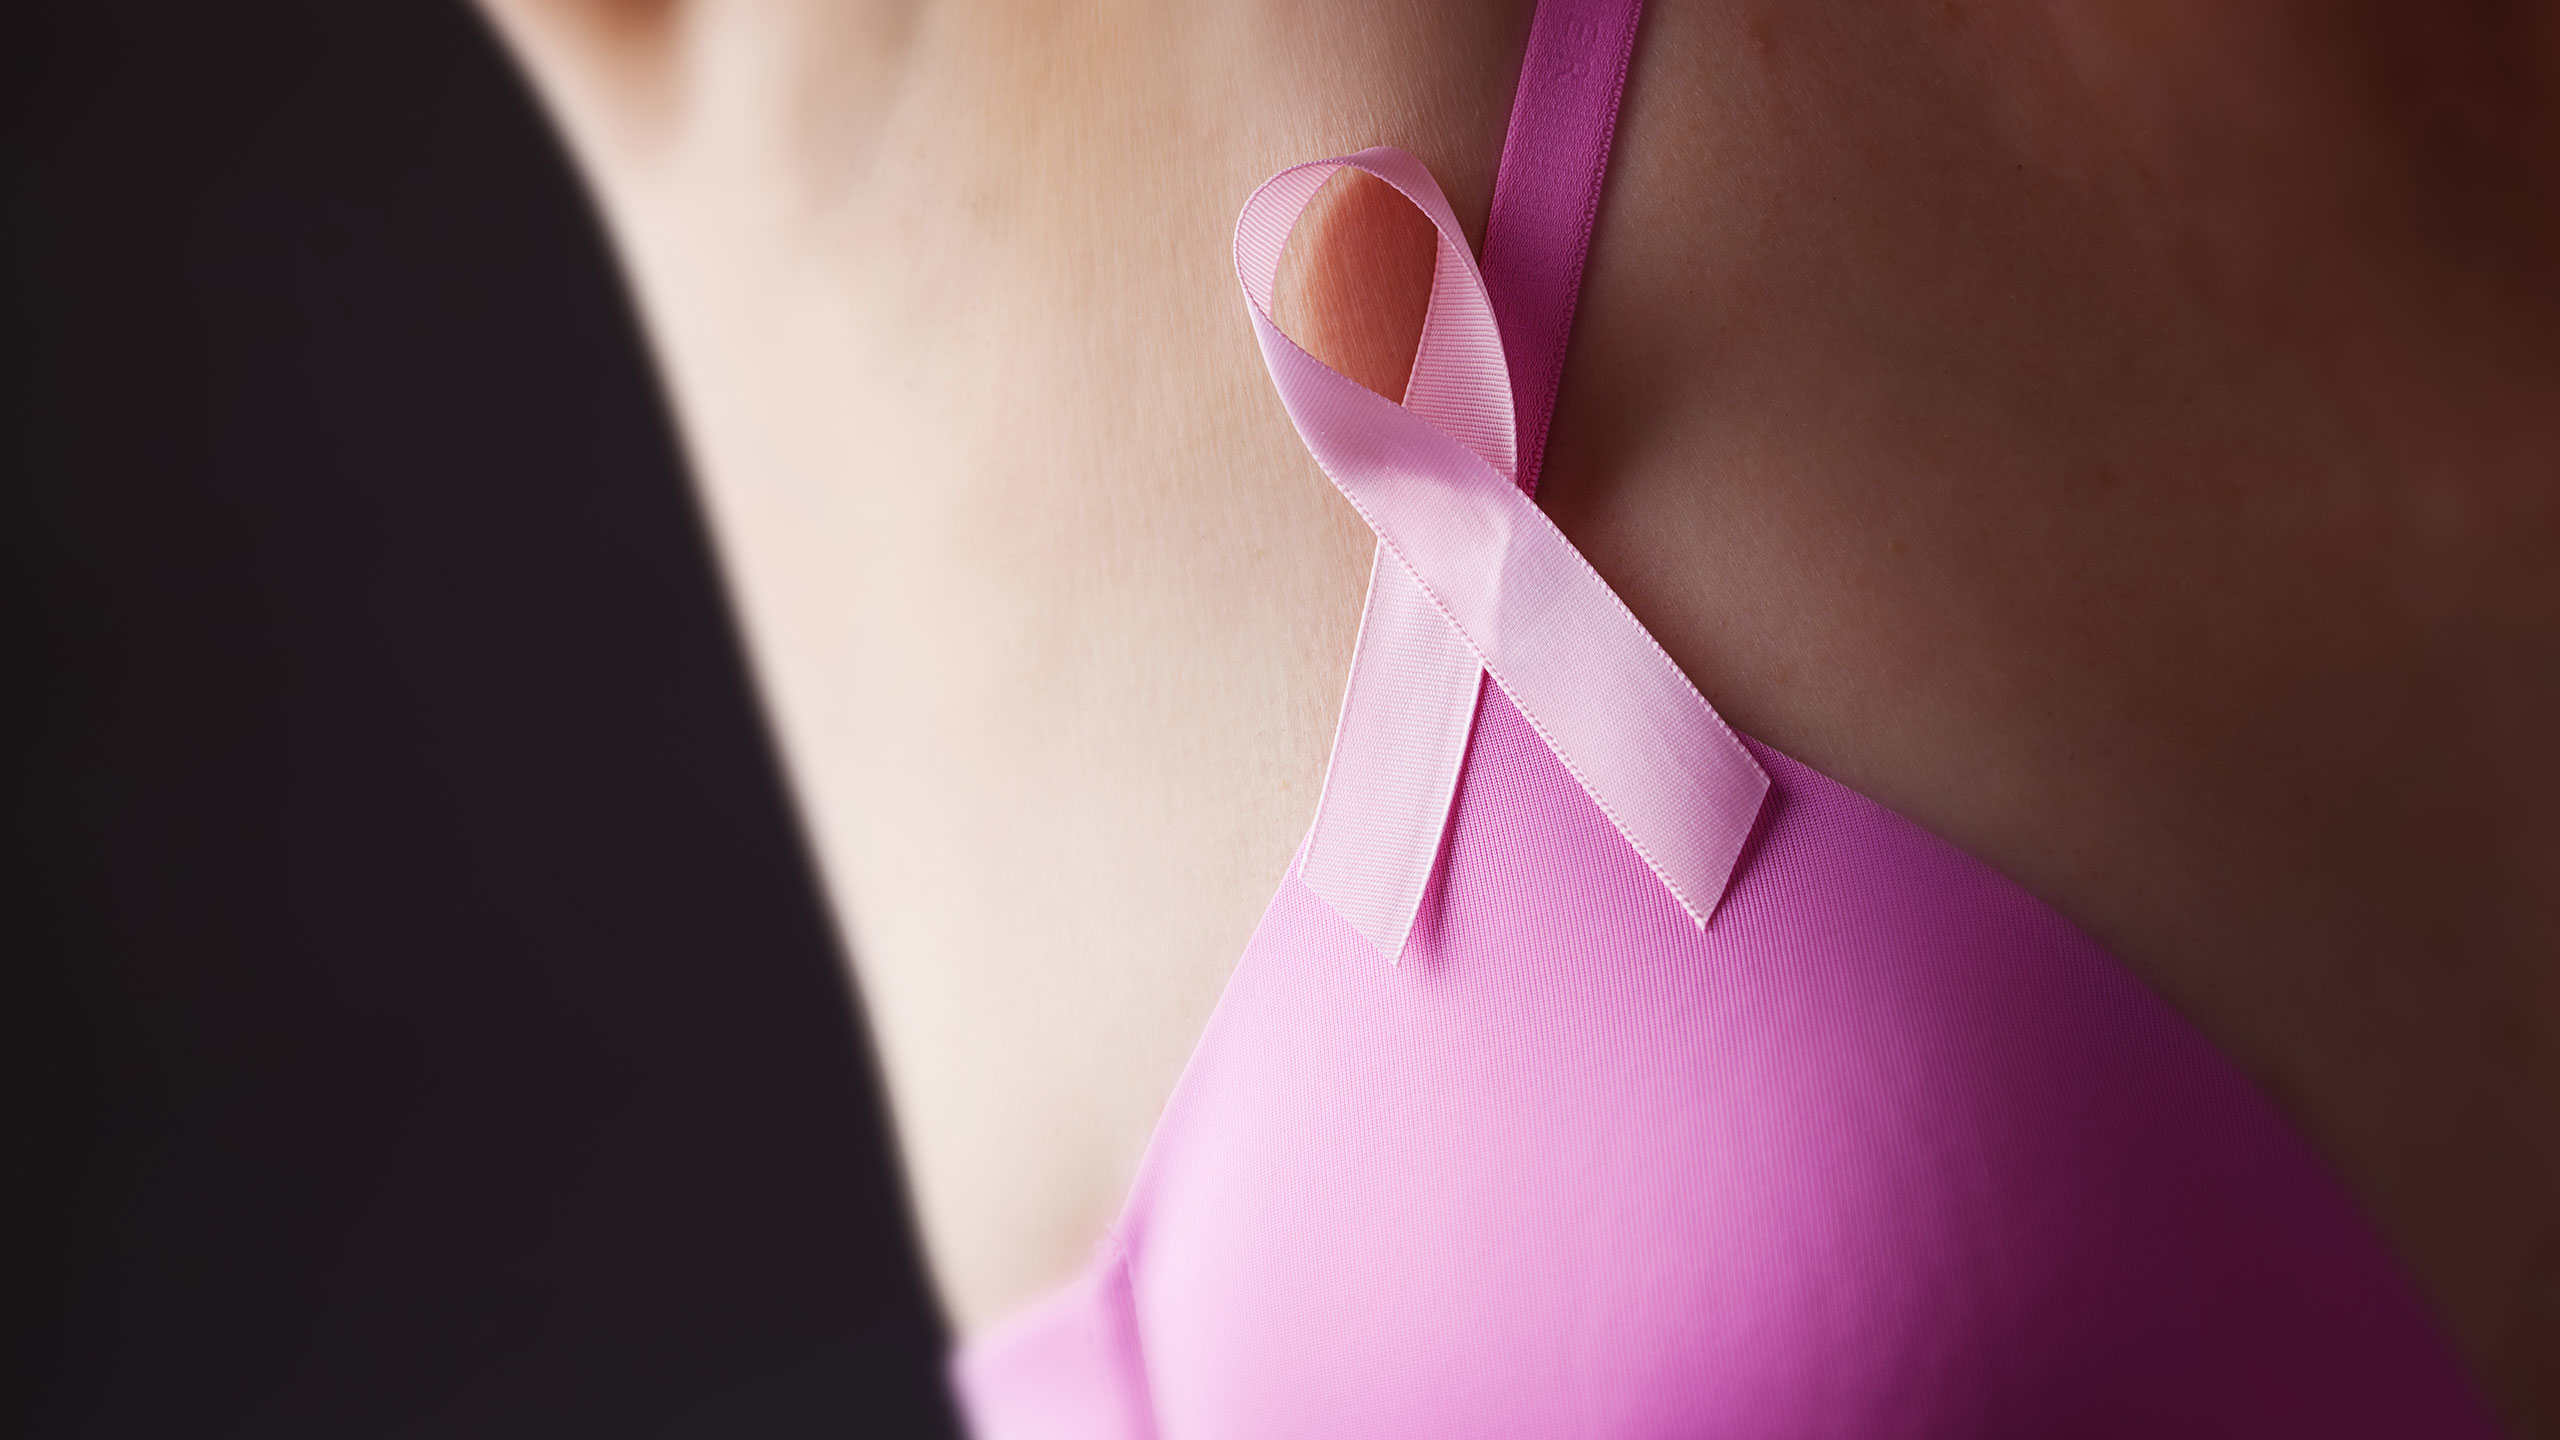 Know the Signs: Breast Cancer